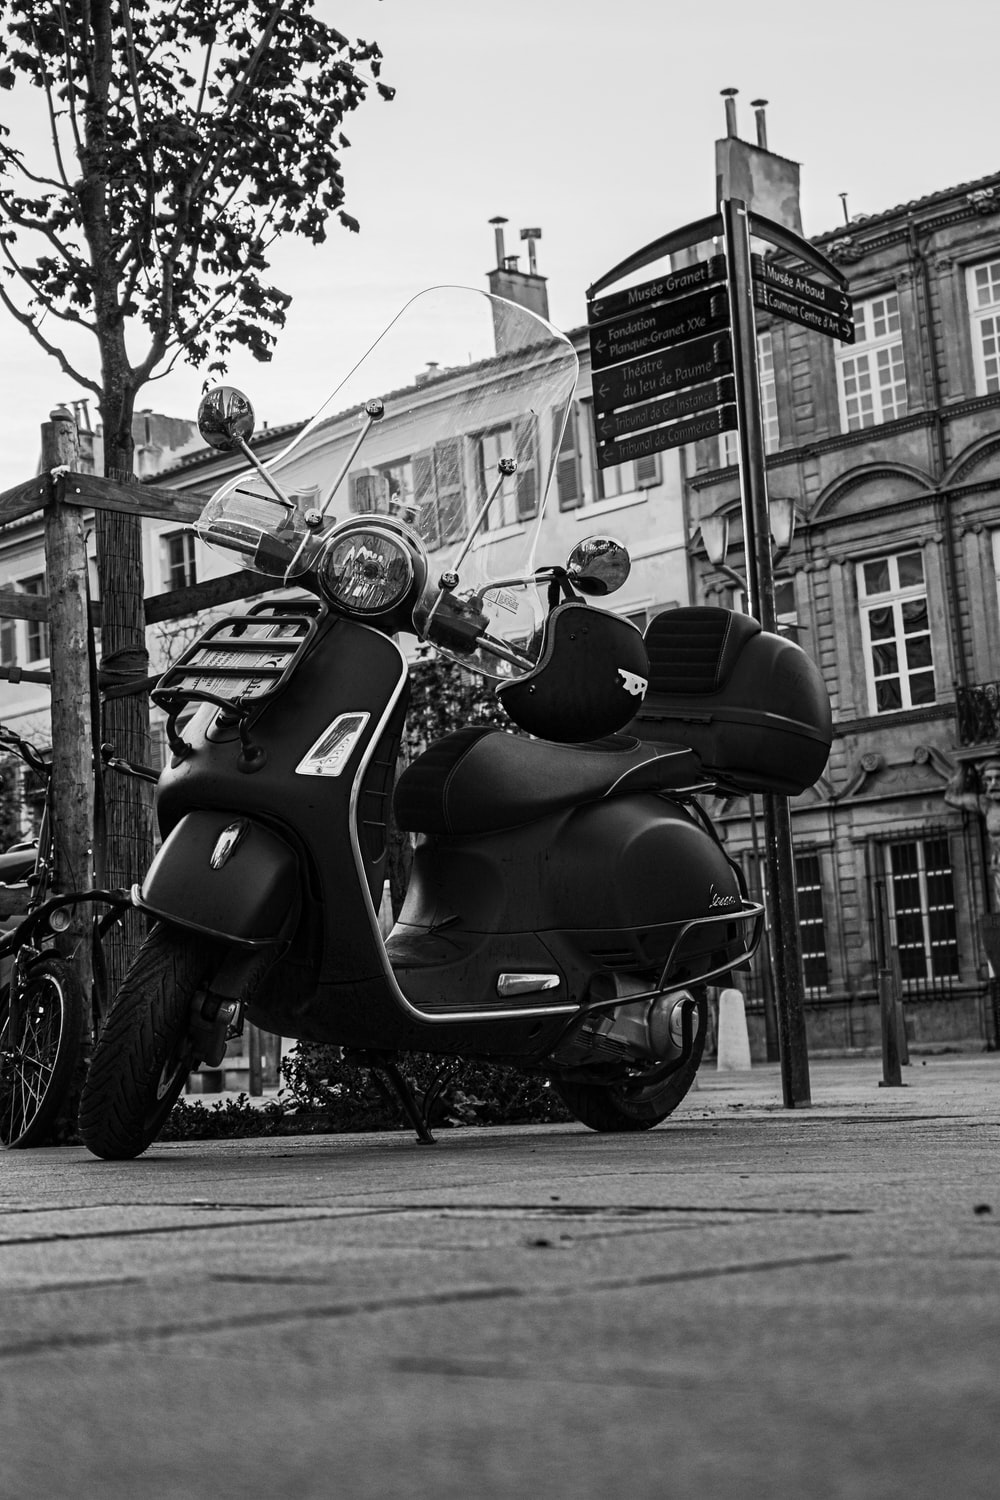 grayscale photo of motorcycle parked on street